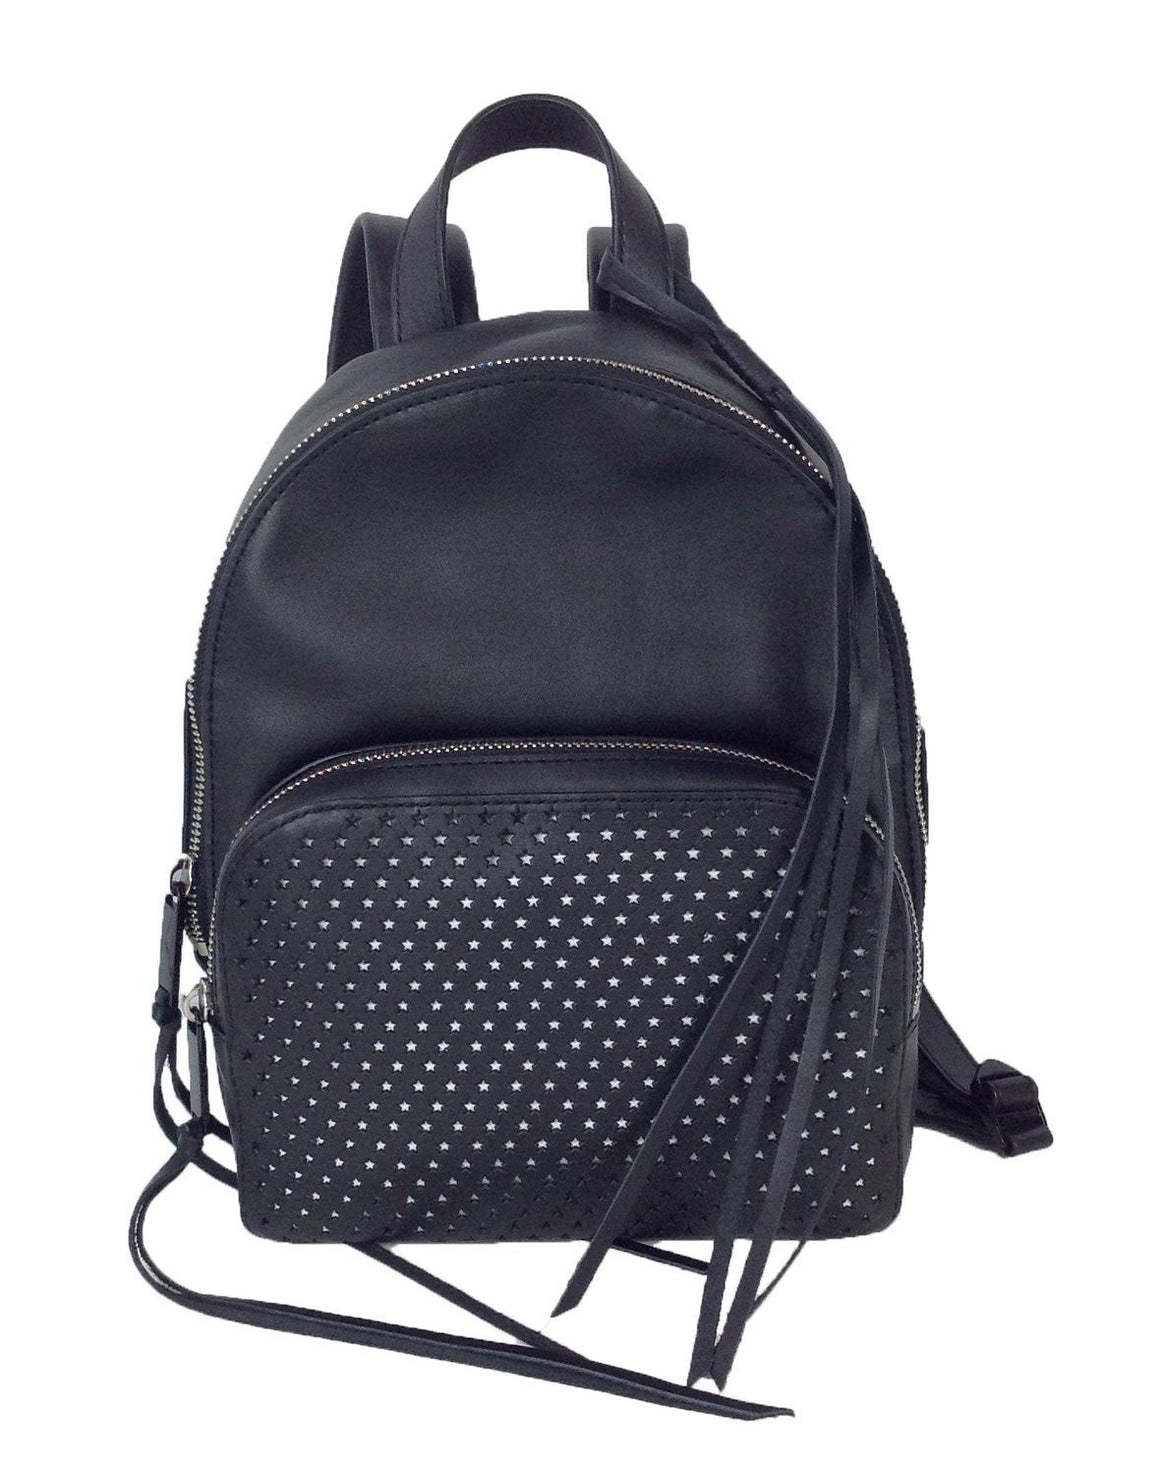 Rebecca Minkoff Star Perforated Leather Backpack, Black Womens Backpacks Rebecca Minkoff